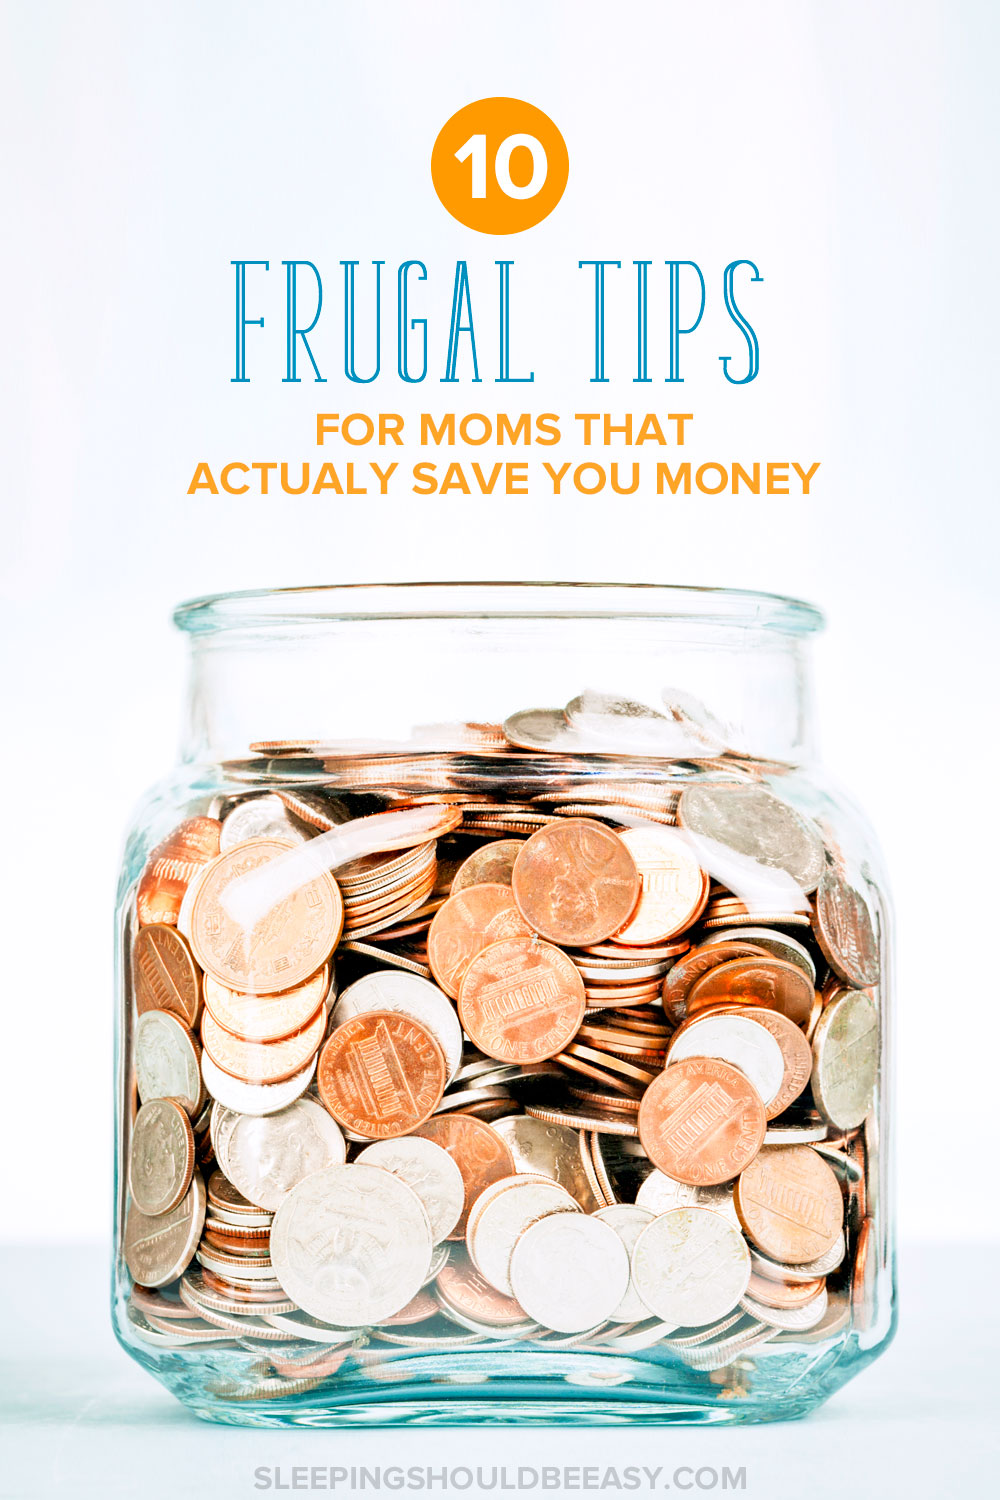 Parenthood can wipe out your finances. Here are 10 frugal tips for moms to make sure that doesn't happen. These tips are perfect for thrifty moms looking to save money on children.